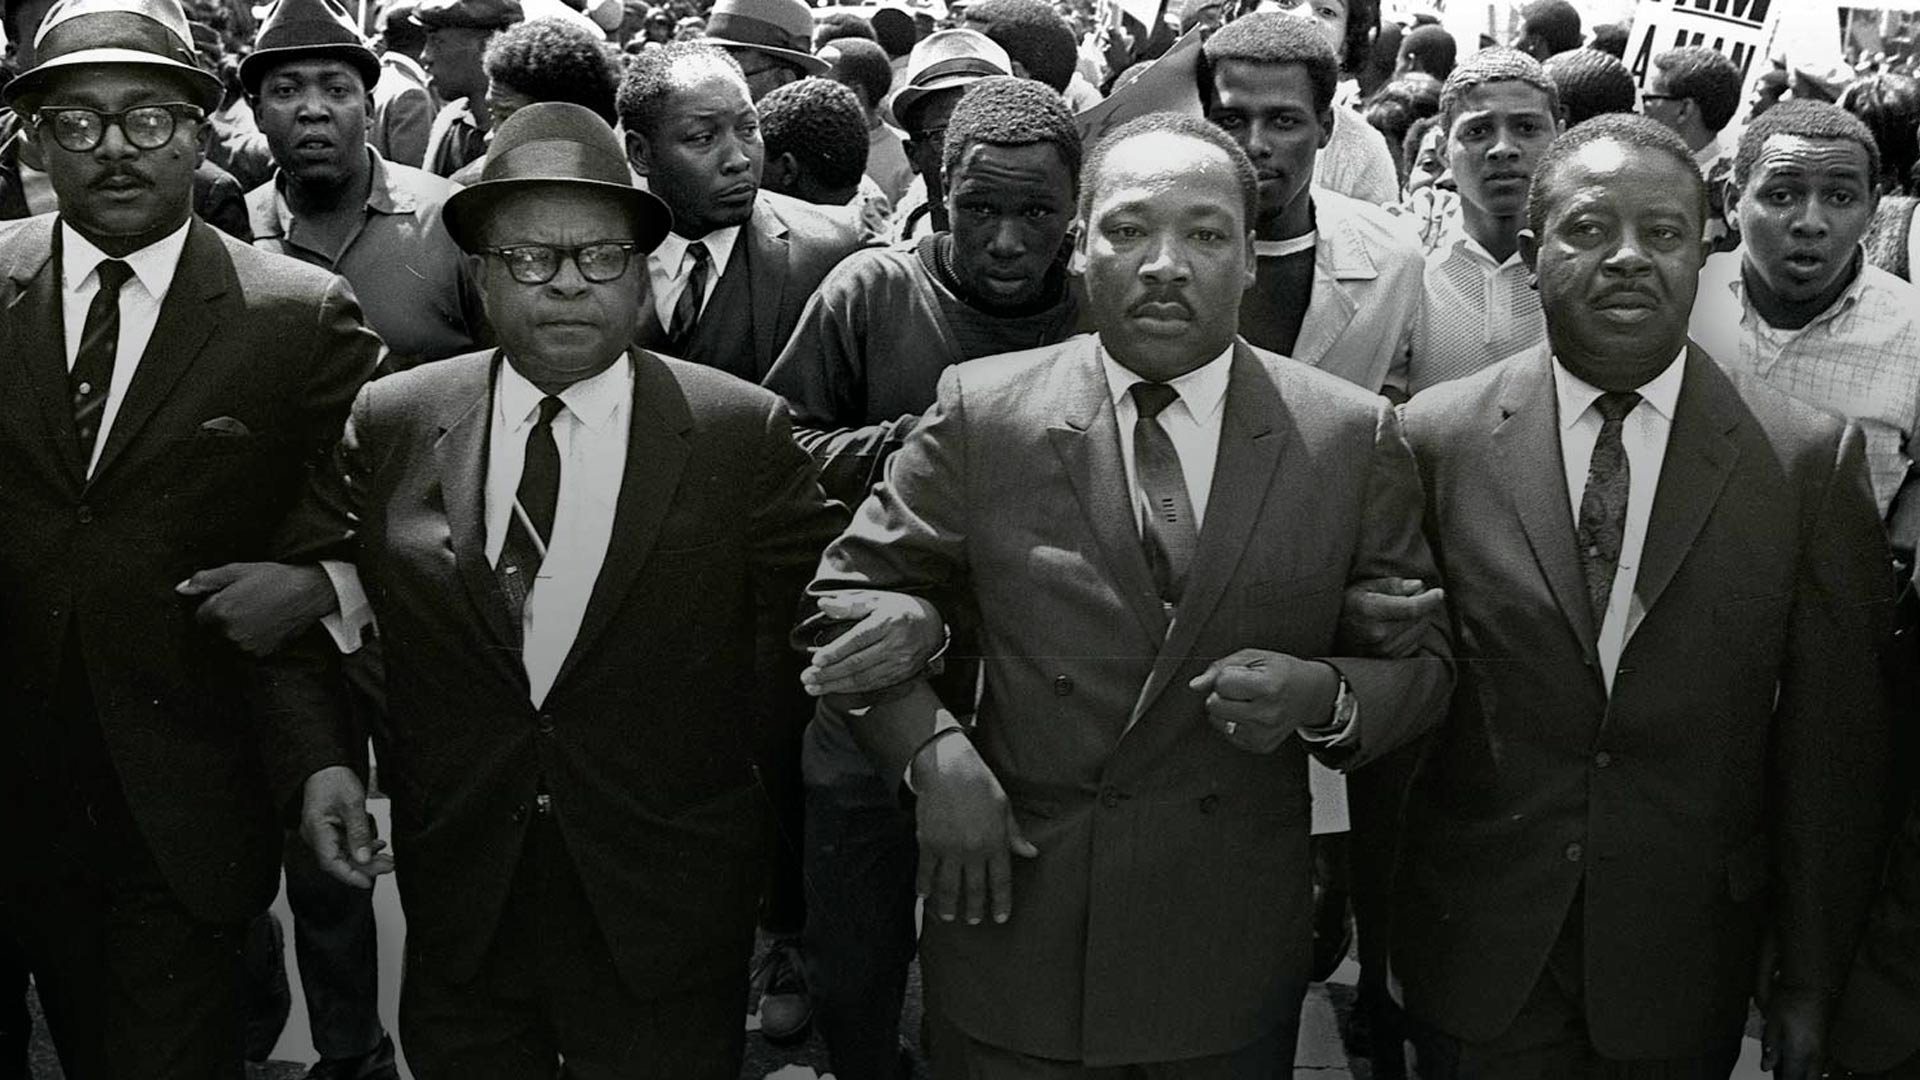 black_america_mlk_march_hero